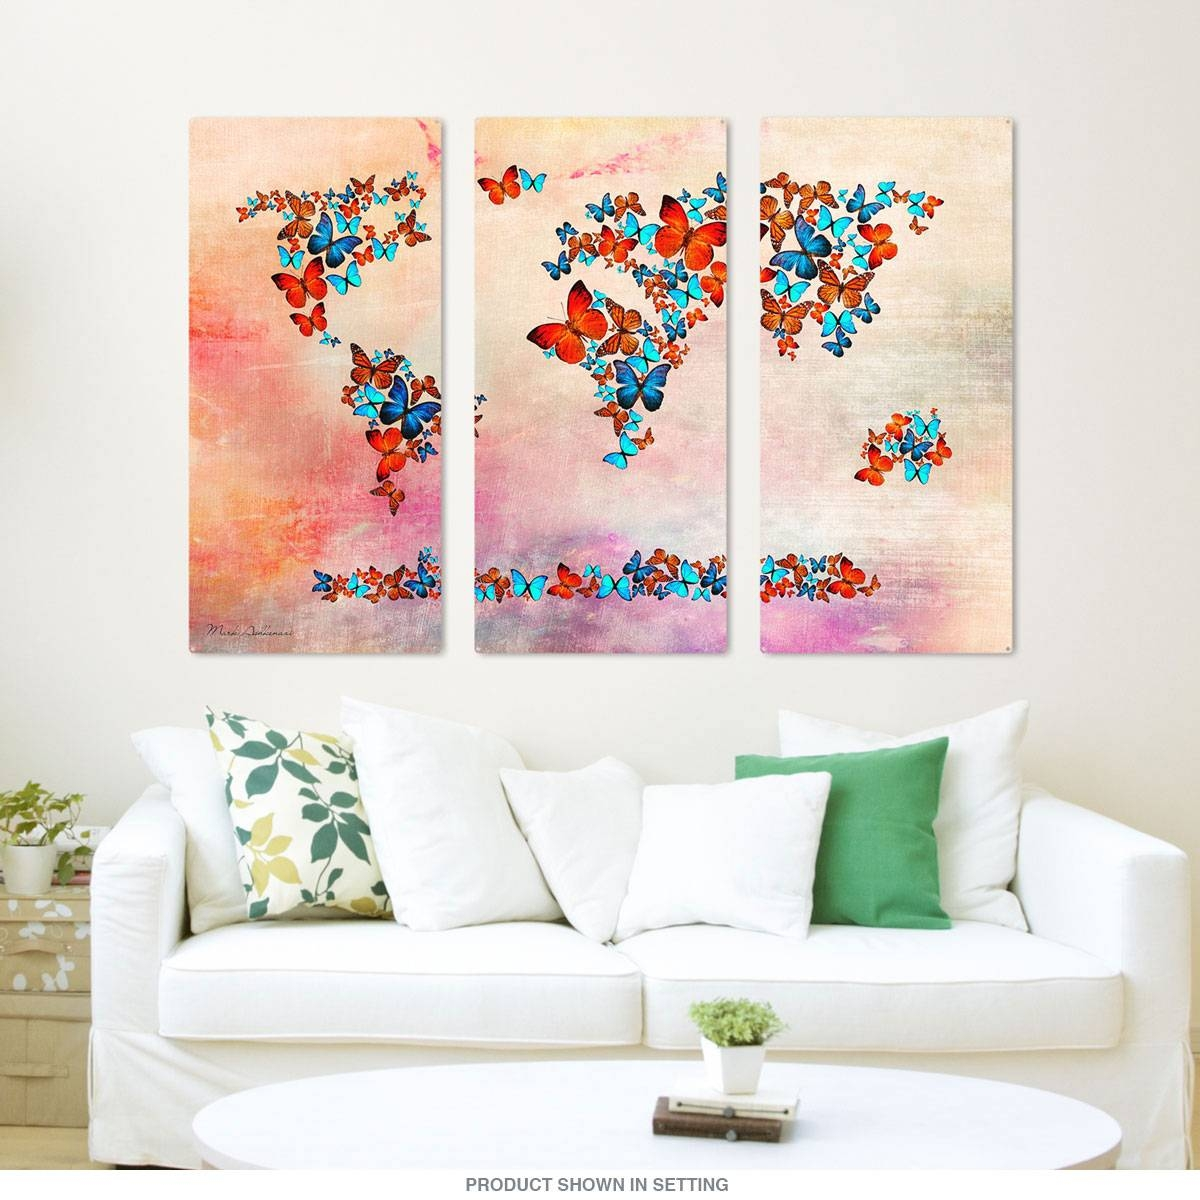 Rainbow Butterfly World Map Triptych Metal Wall Art | Large Sign Intended For 2018 Butterfly Map Wall Art (View 7 of 20)